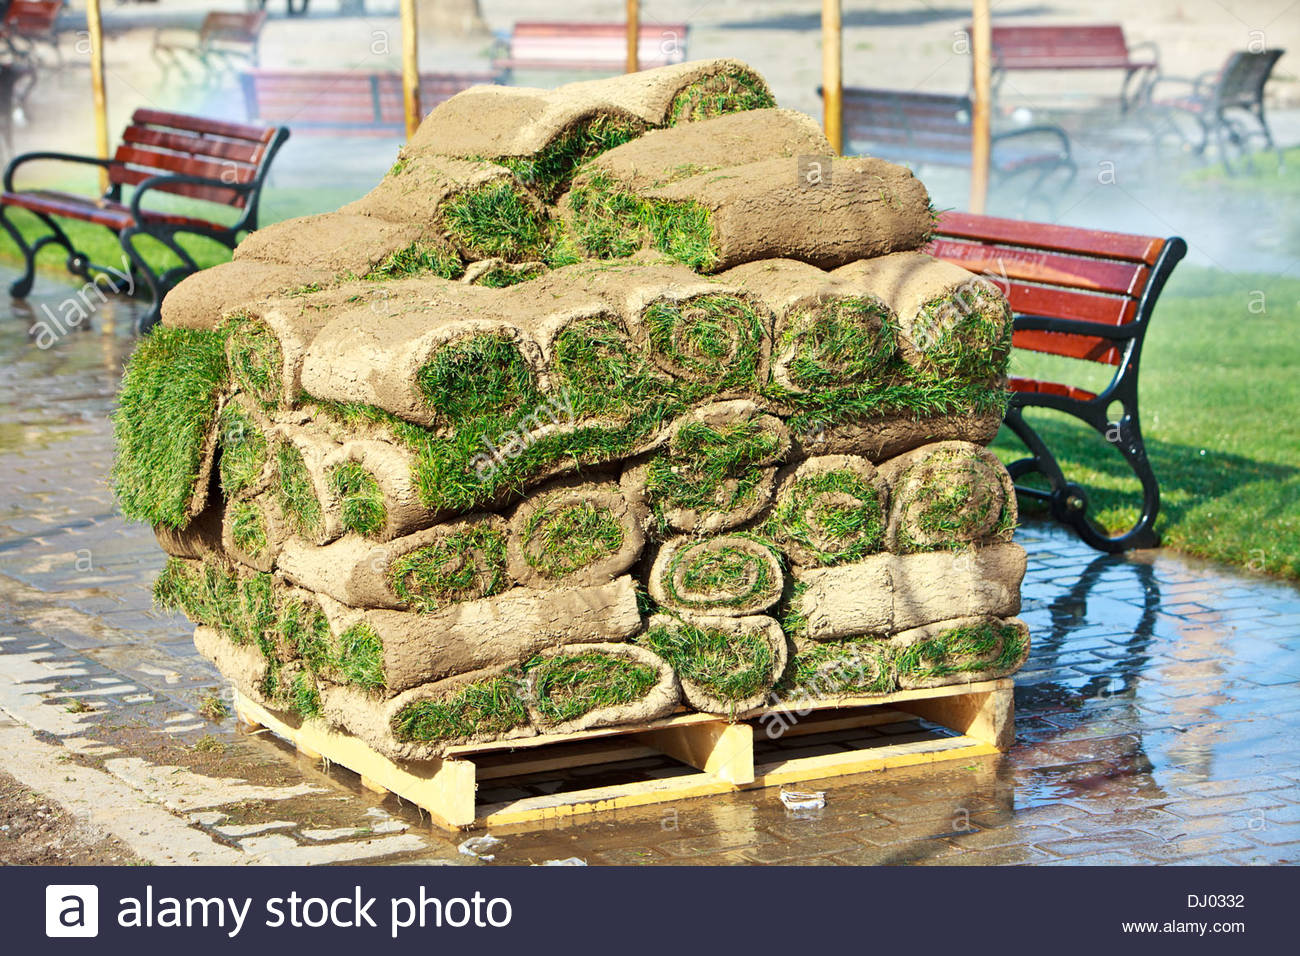 Grass sod on pallet ready for planting lawn or landscaping - Stock Image